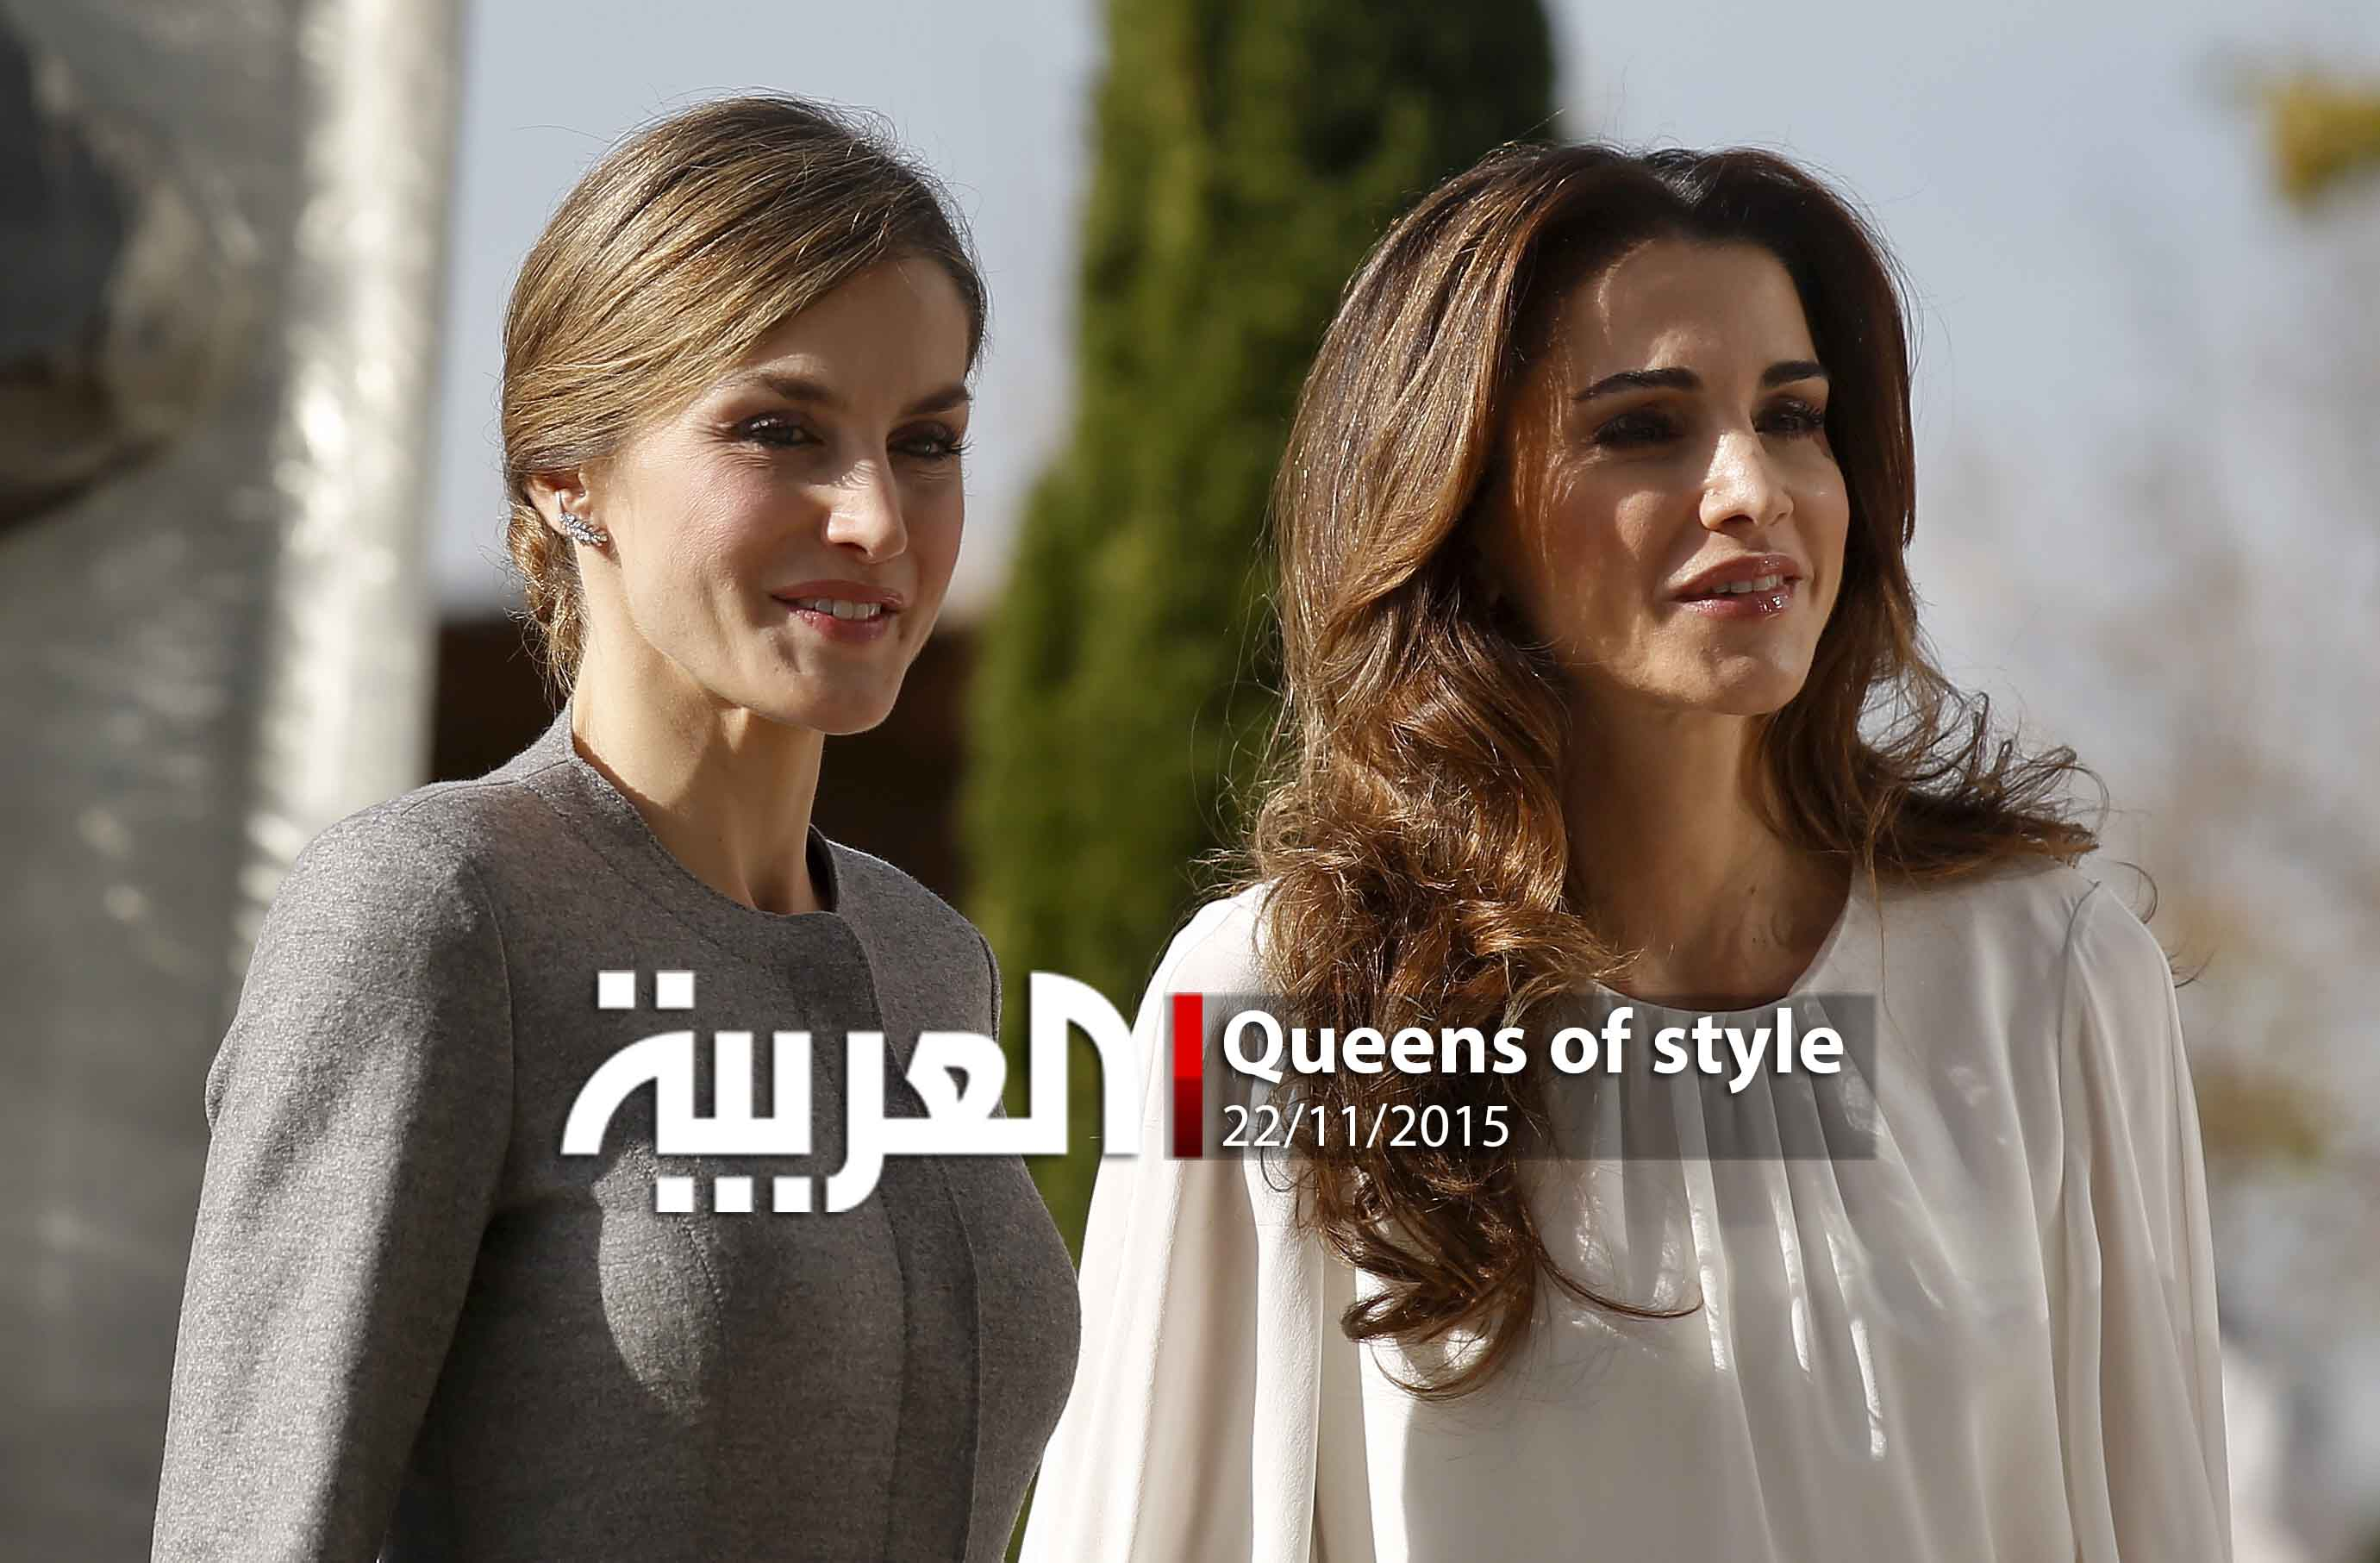 Queens of style